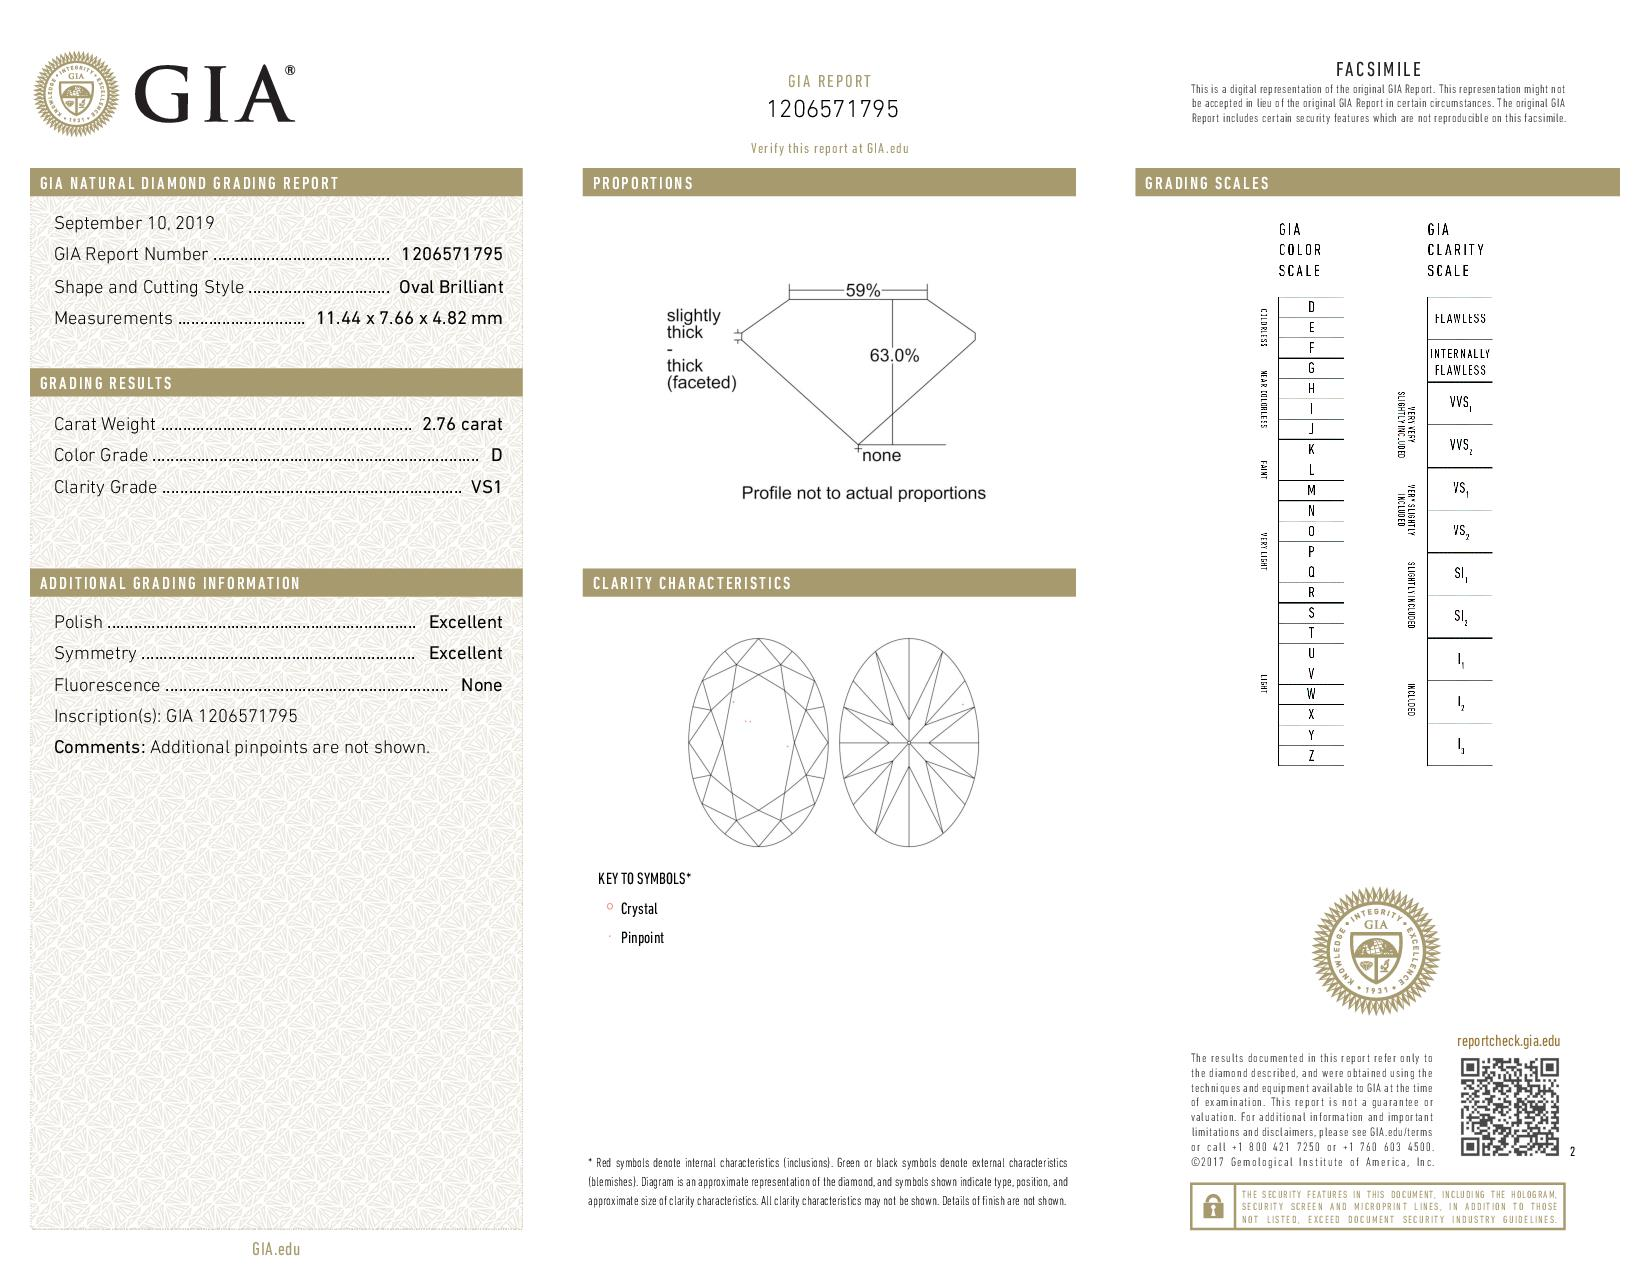 This is a 2.76 carat oval shape, D color, VS1 clarity natural diamond accompanied by a GIA grading report.